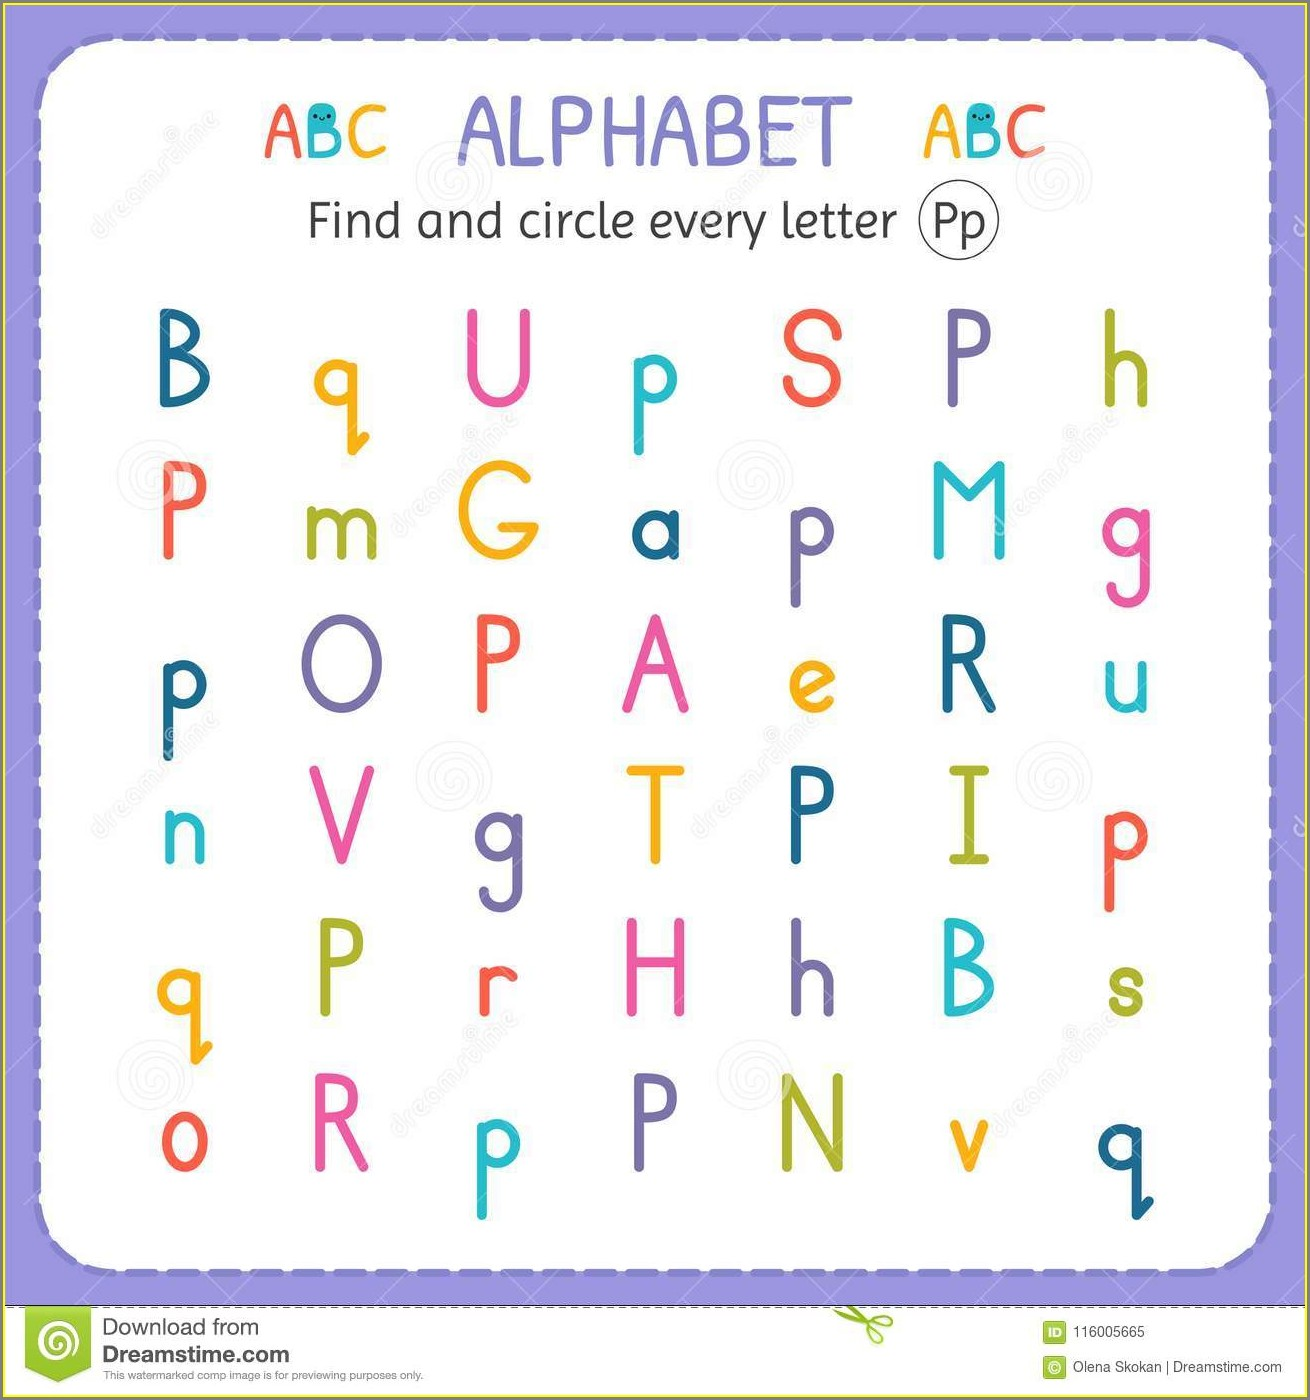 Worksheet For Letter P For Preschool